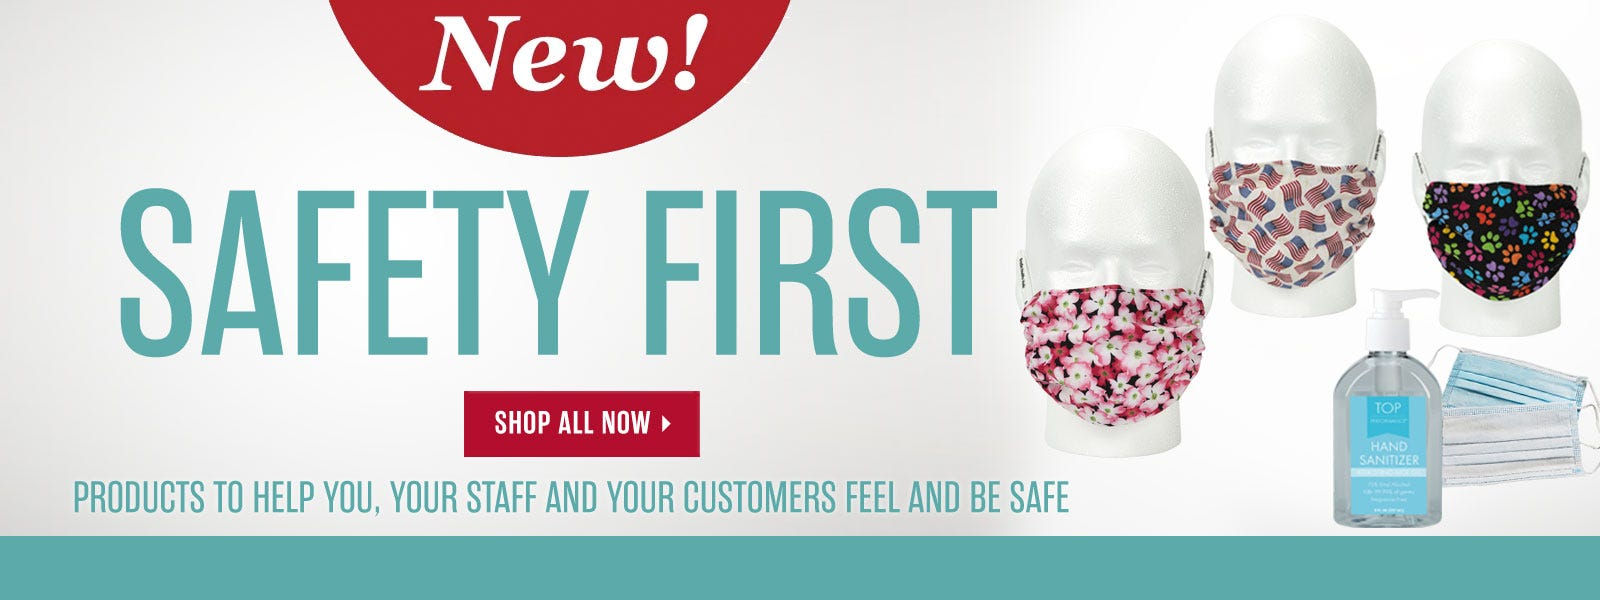 New! Safety First Section